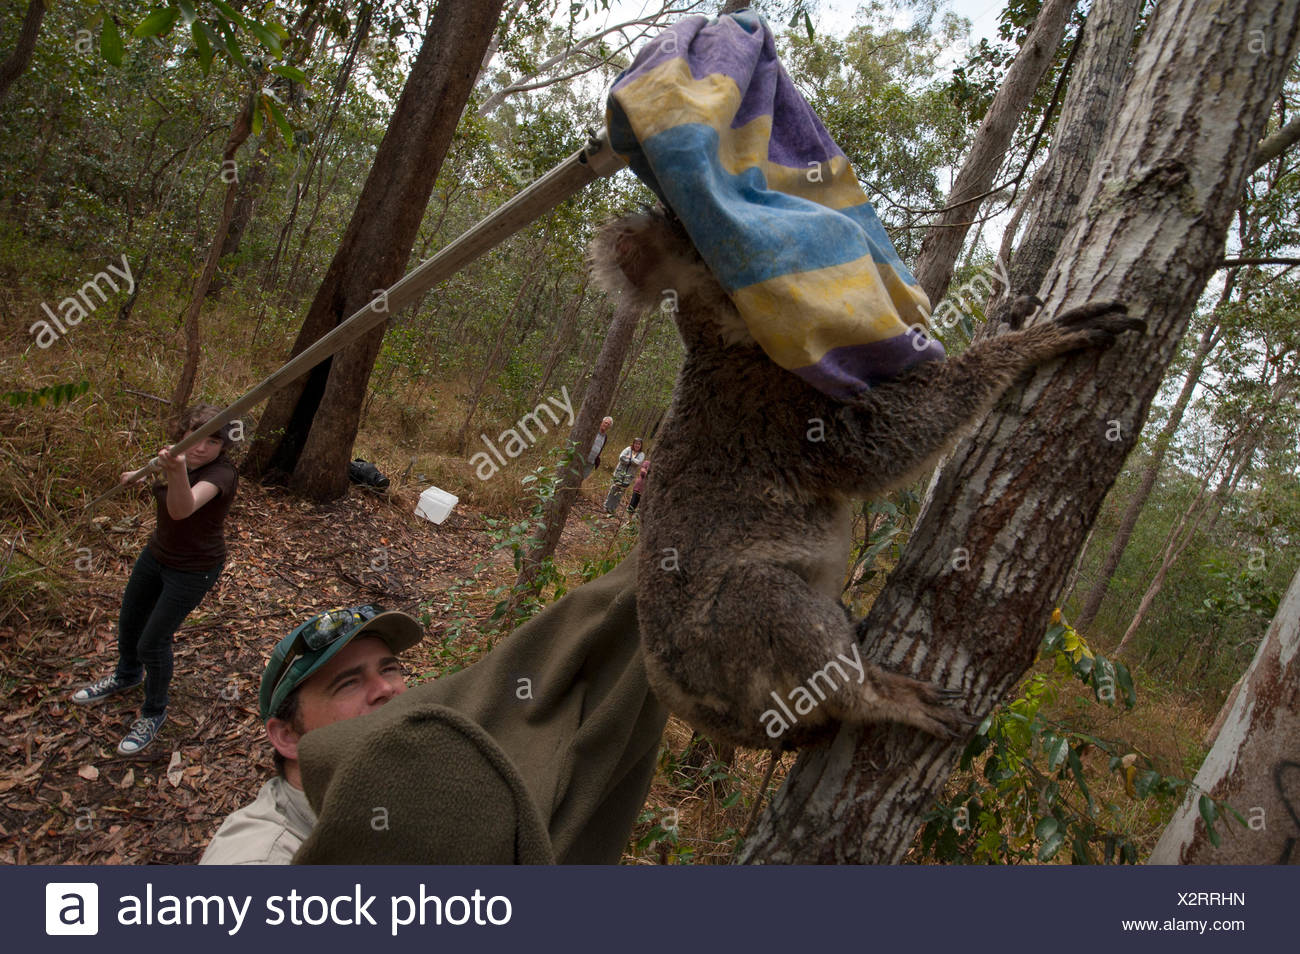 A sick federally threatened koala is captured for treatment. - Stock Image